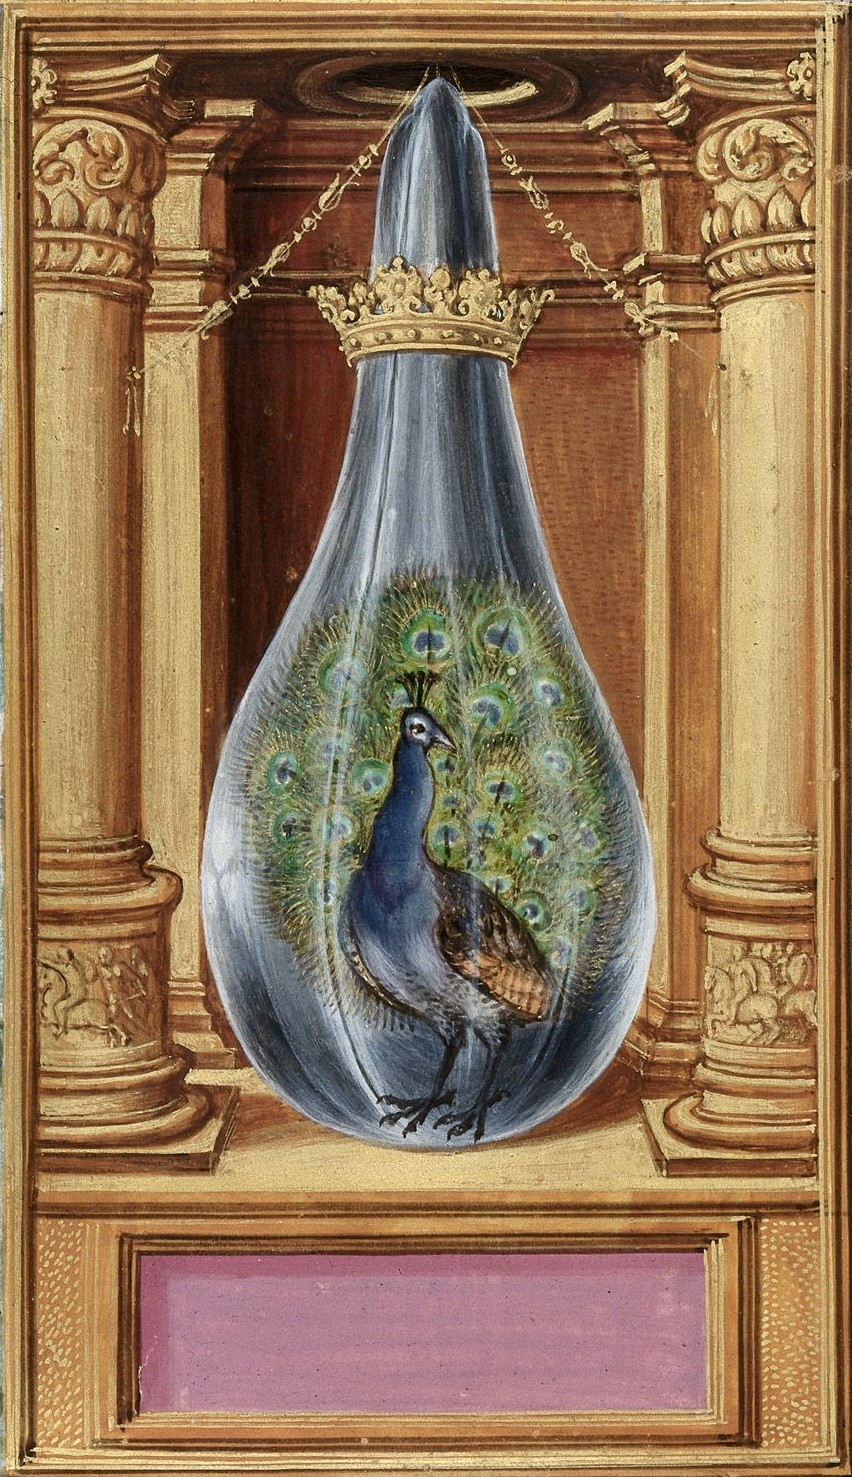 Peacock_from_BL_Harley_3469.jpg